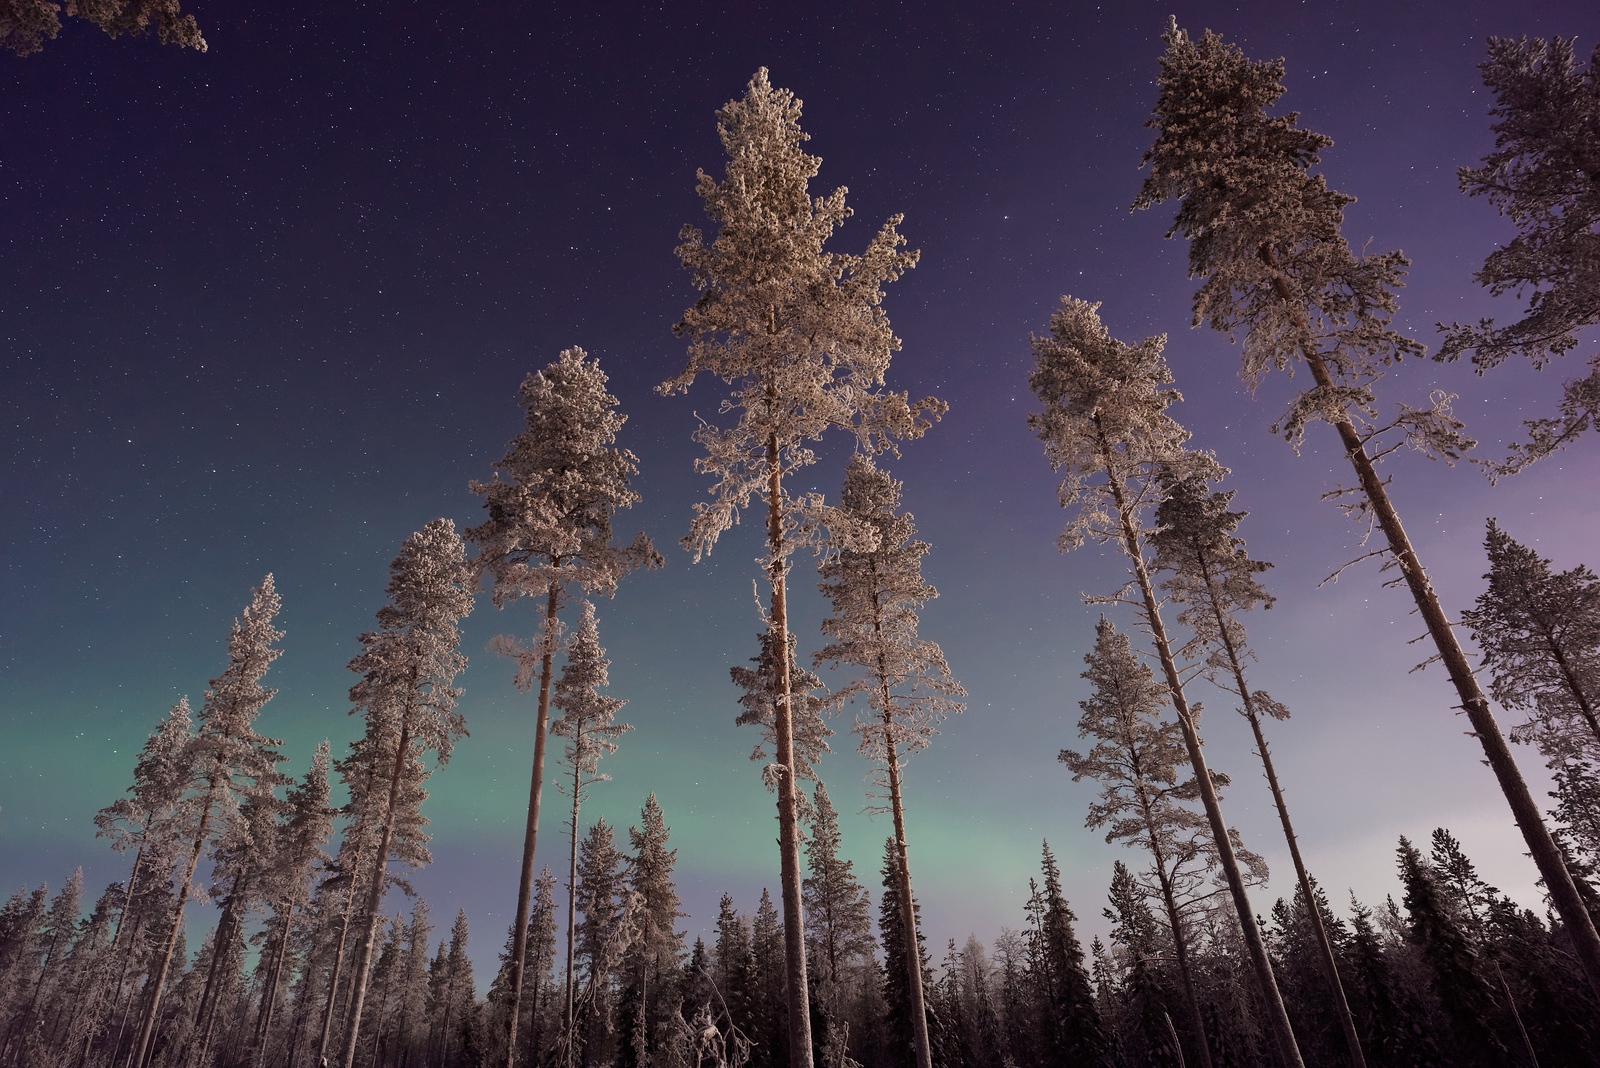 The 10 Best Places to See the Northern Lights - Finland